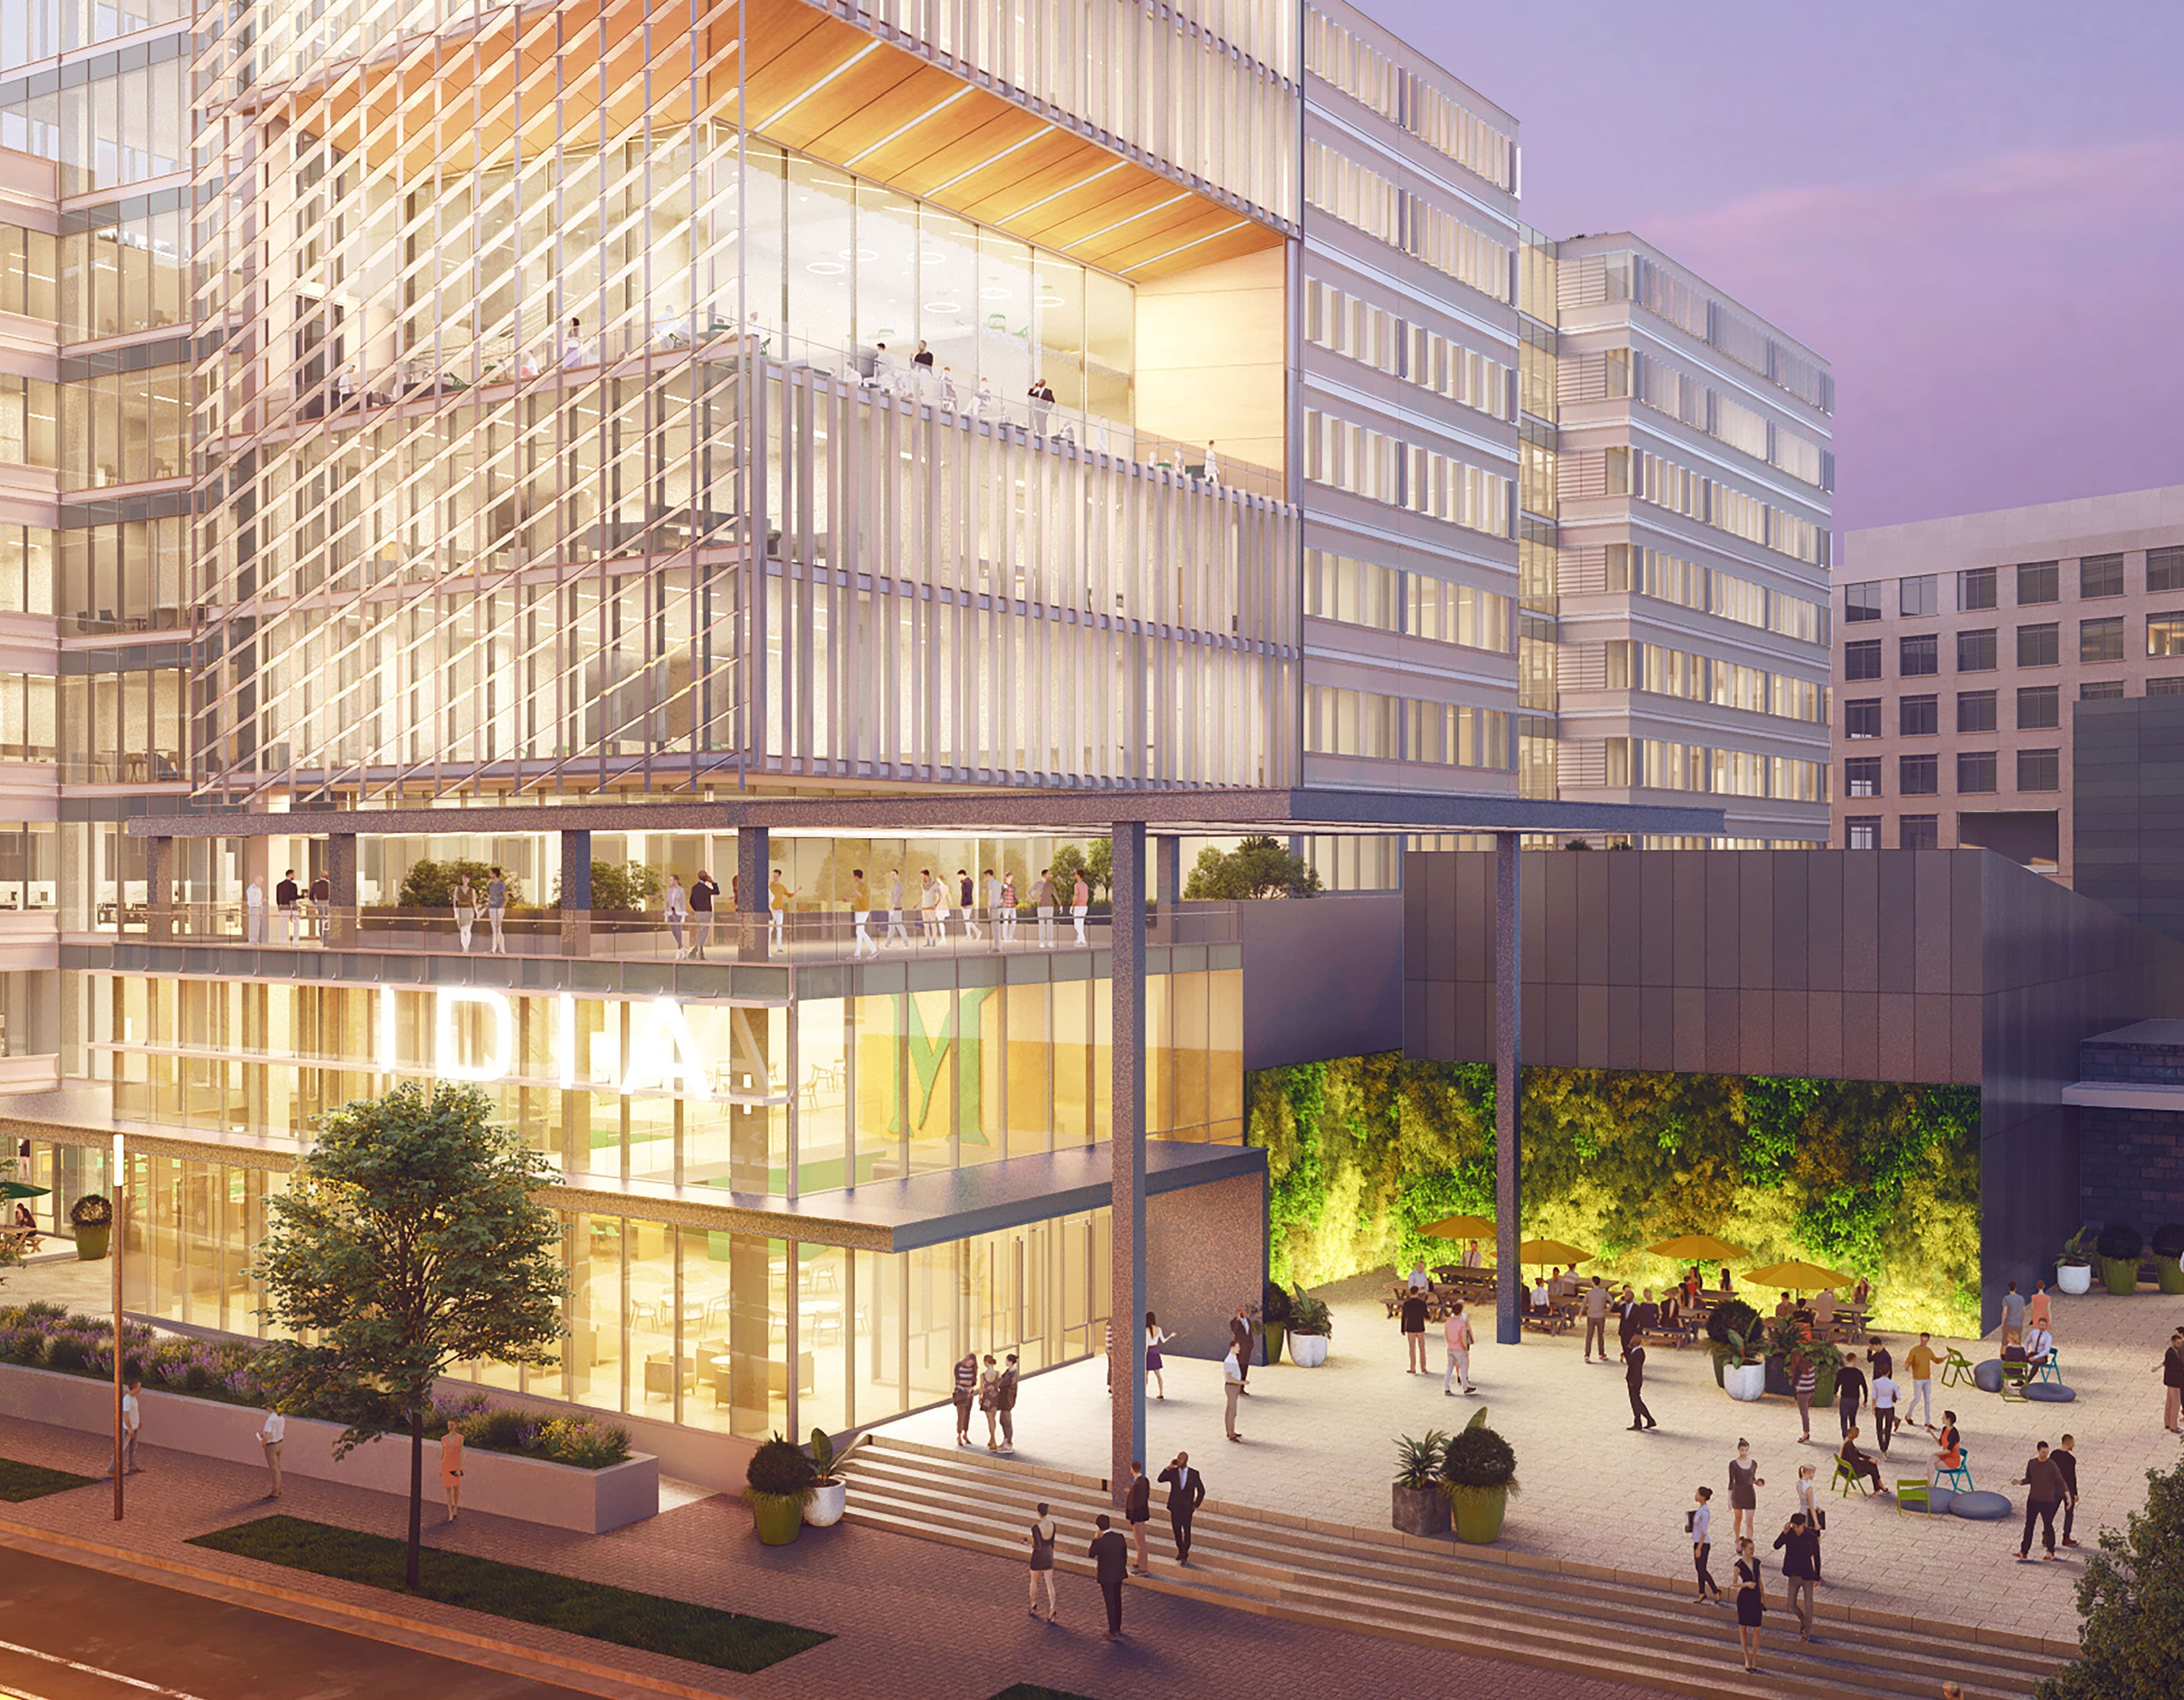 Mason Innovation Partners, a consortium led by Edgemoor as developer and investor, was selected by George Mason University (Mason) to begin negotiations on a P3 to design, build, finance, lease, and operate the new digital innovation headquarters on Mason's Arlington, Virginia campus.